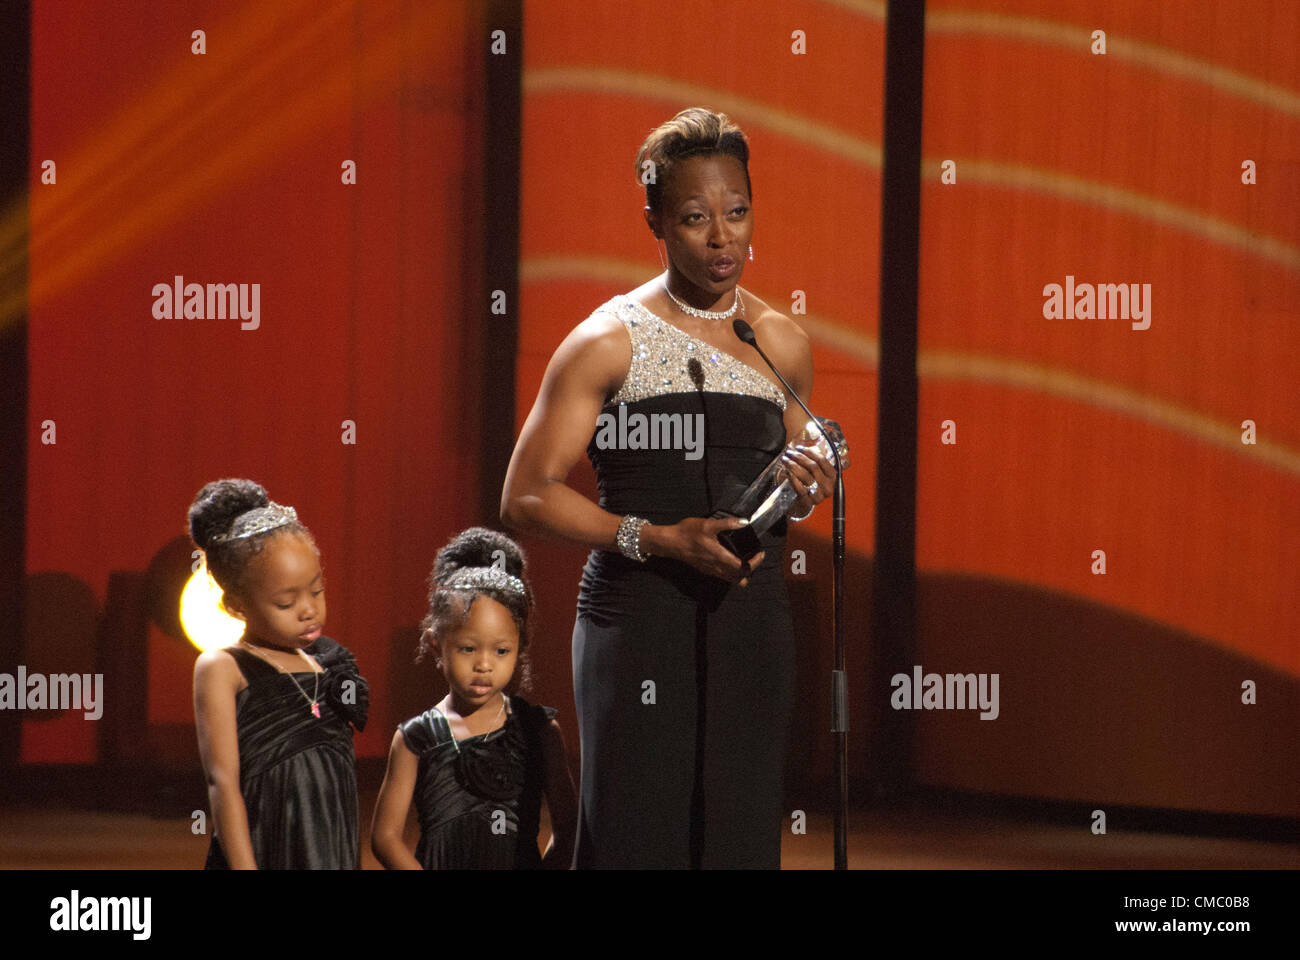 Gail Devers on stage with her daughters Karsen and Legacy, accepts the inductee award for the U.S. Olympic Hall - Stock Image